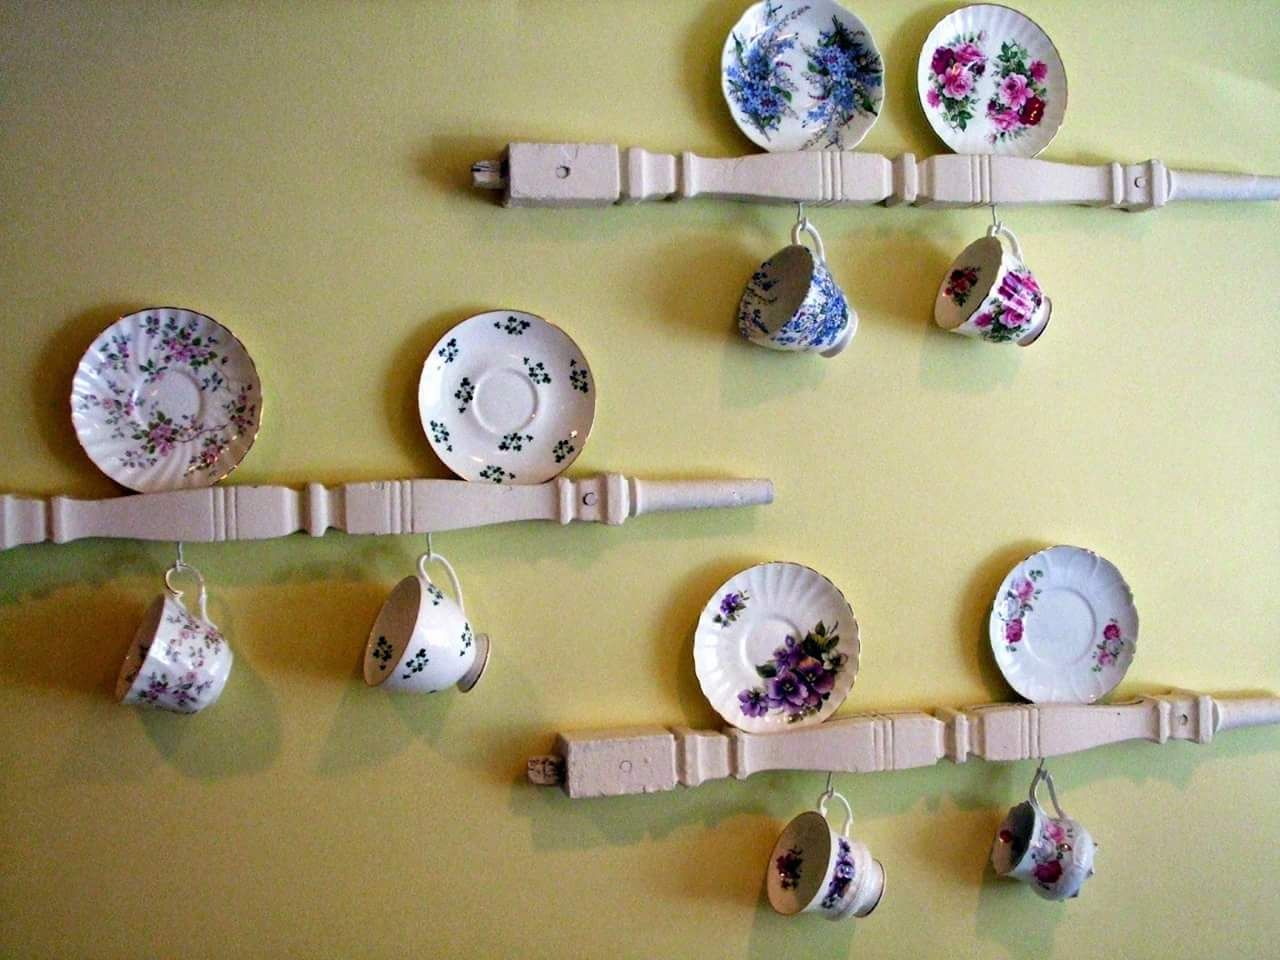 60 Reuse Teacups And Teapots In Ways That Leave our Guests ...